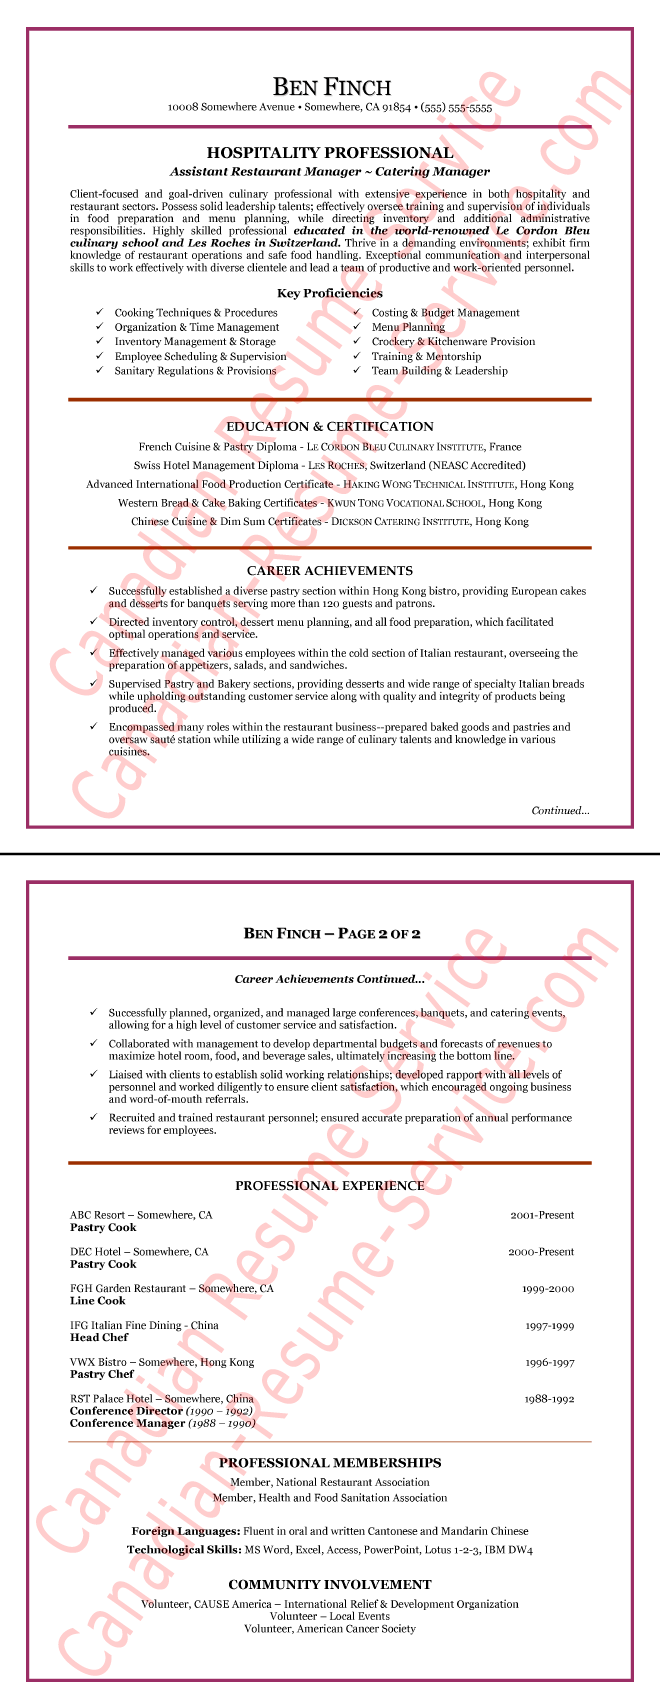 resume template for hospitality industry